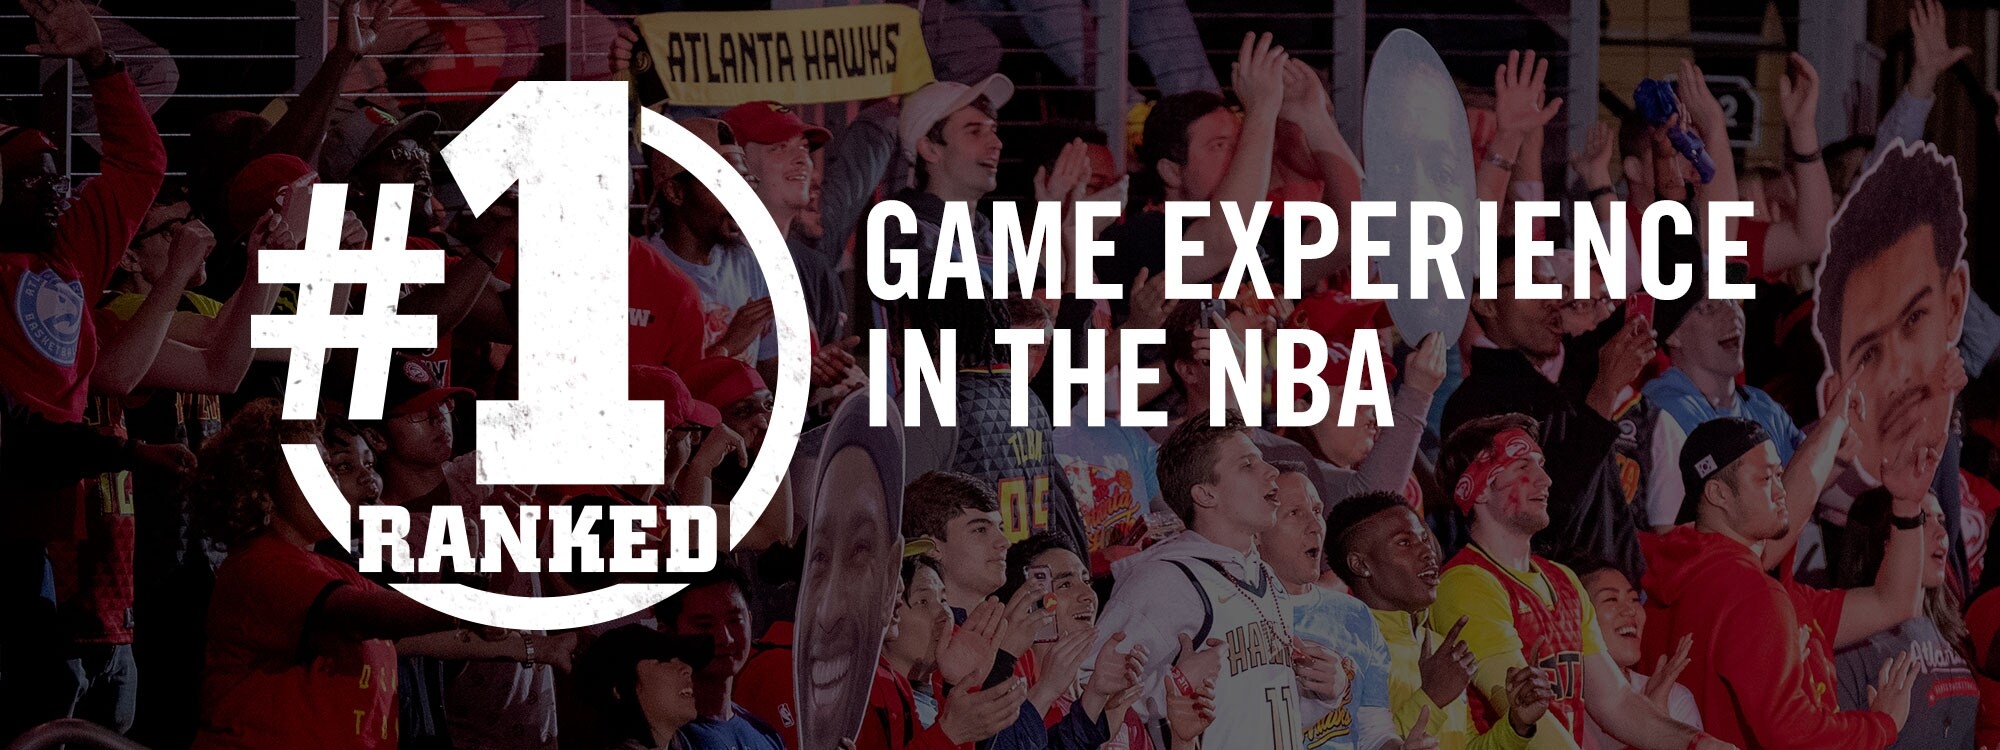 #1 Experience in the NBA